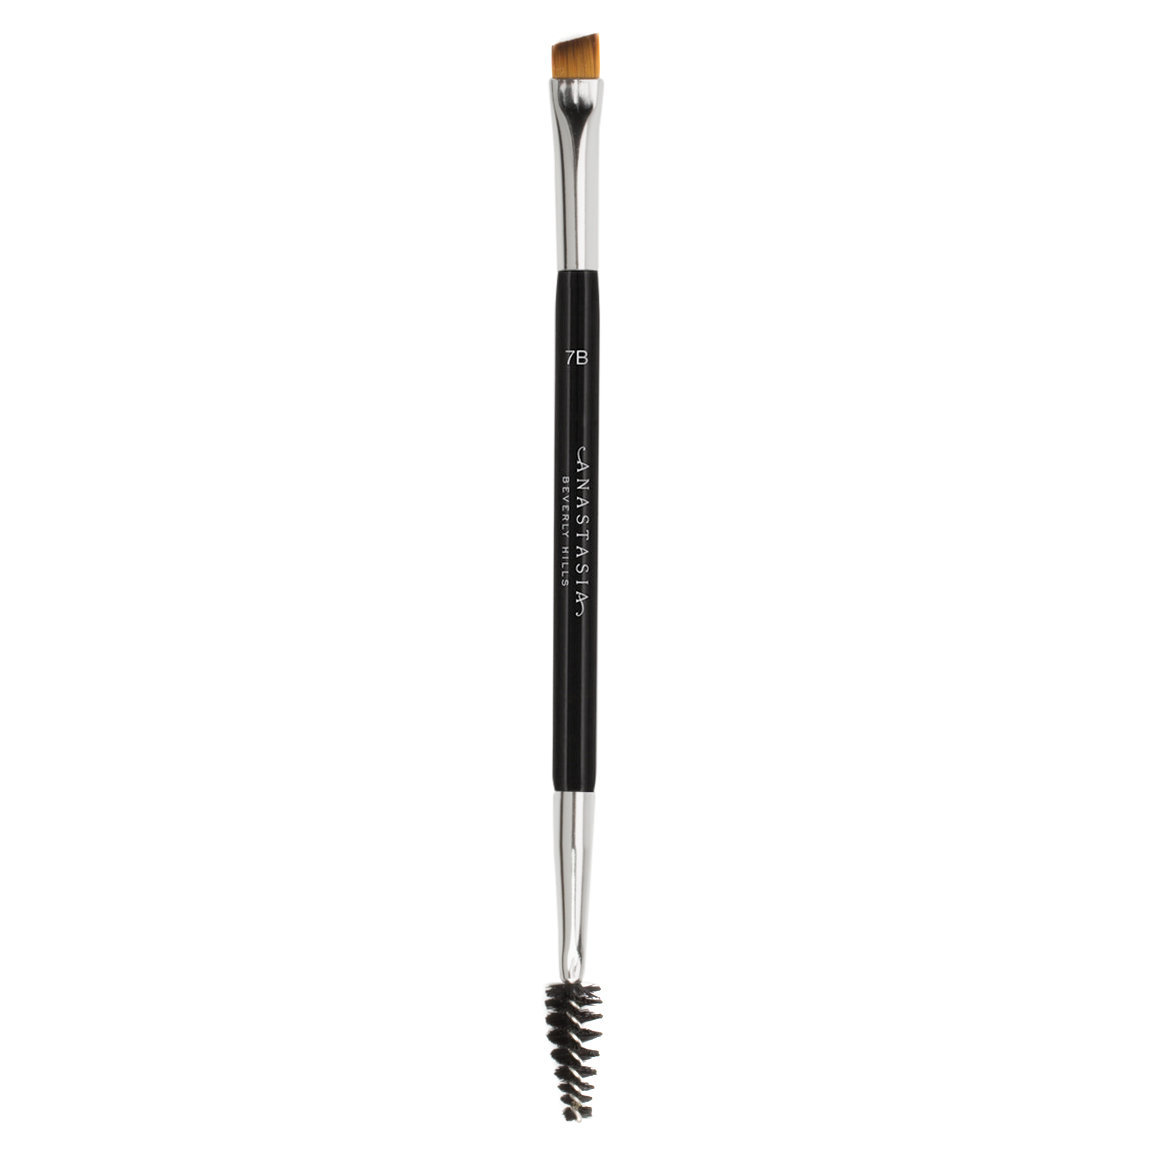 Anastasia Beverly Hills Brush 7B Dual-Ended Angled Brush product swatch.